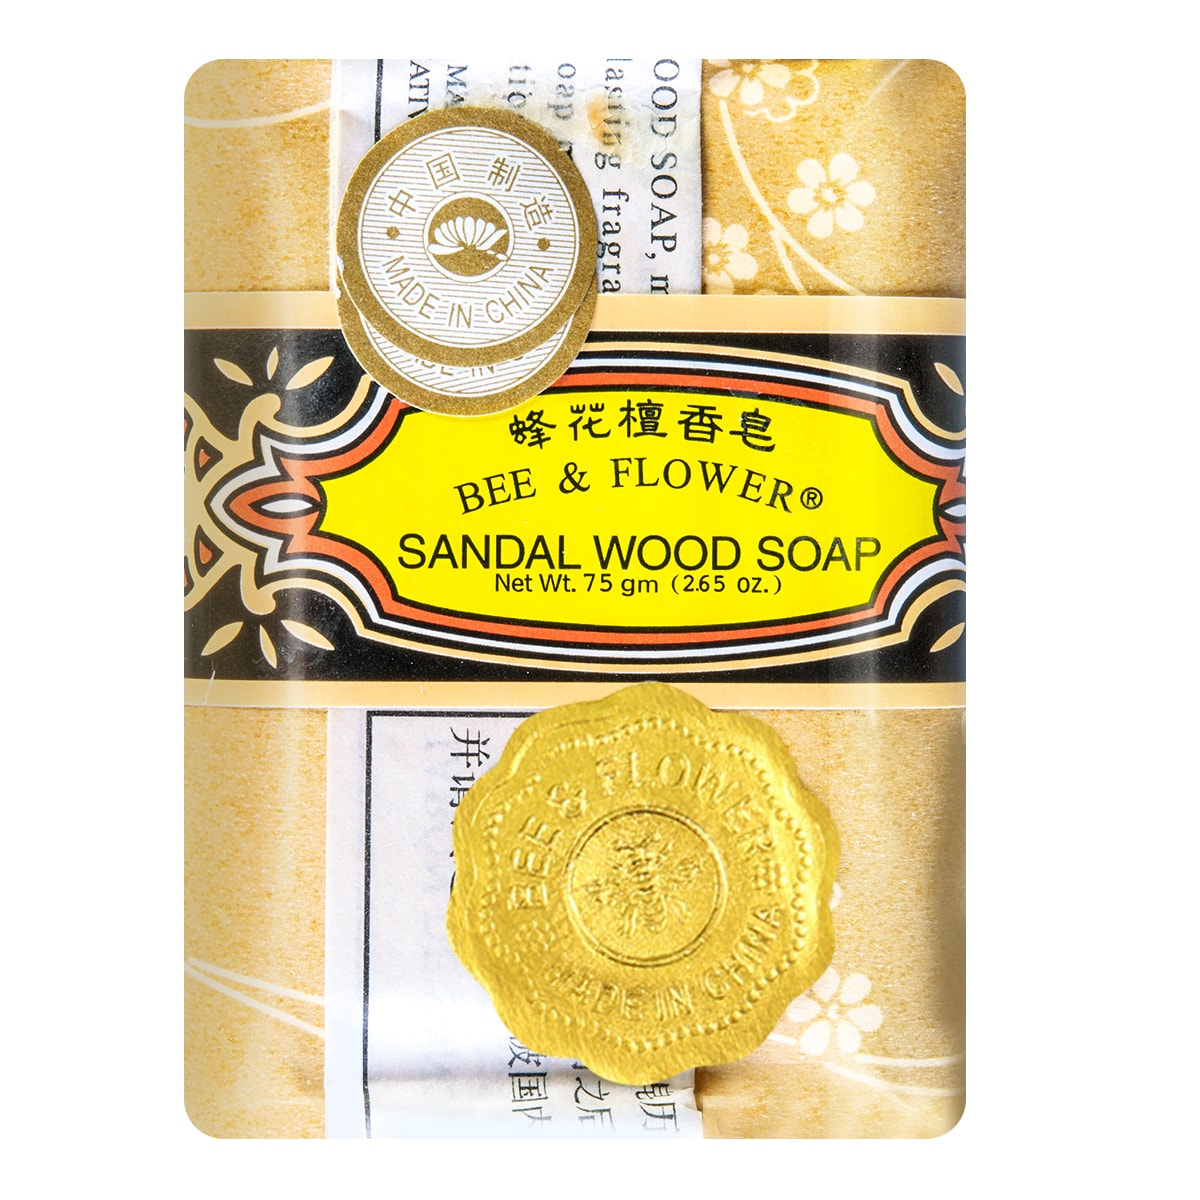 BEE & FLOWER Multi Purpose Soap Sandalwood 75g